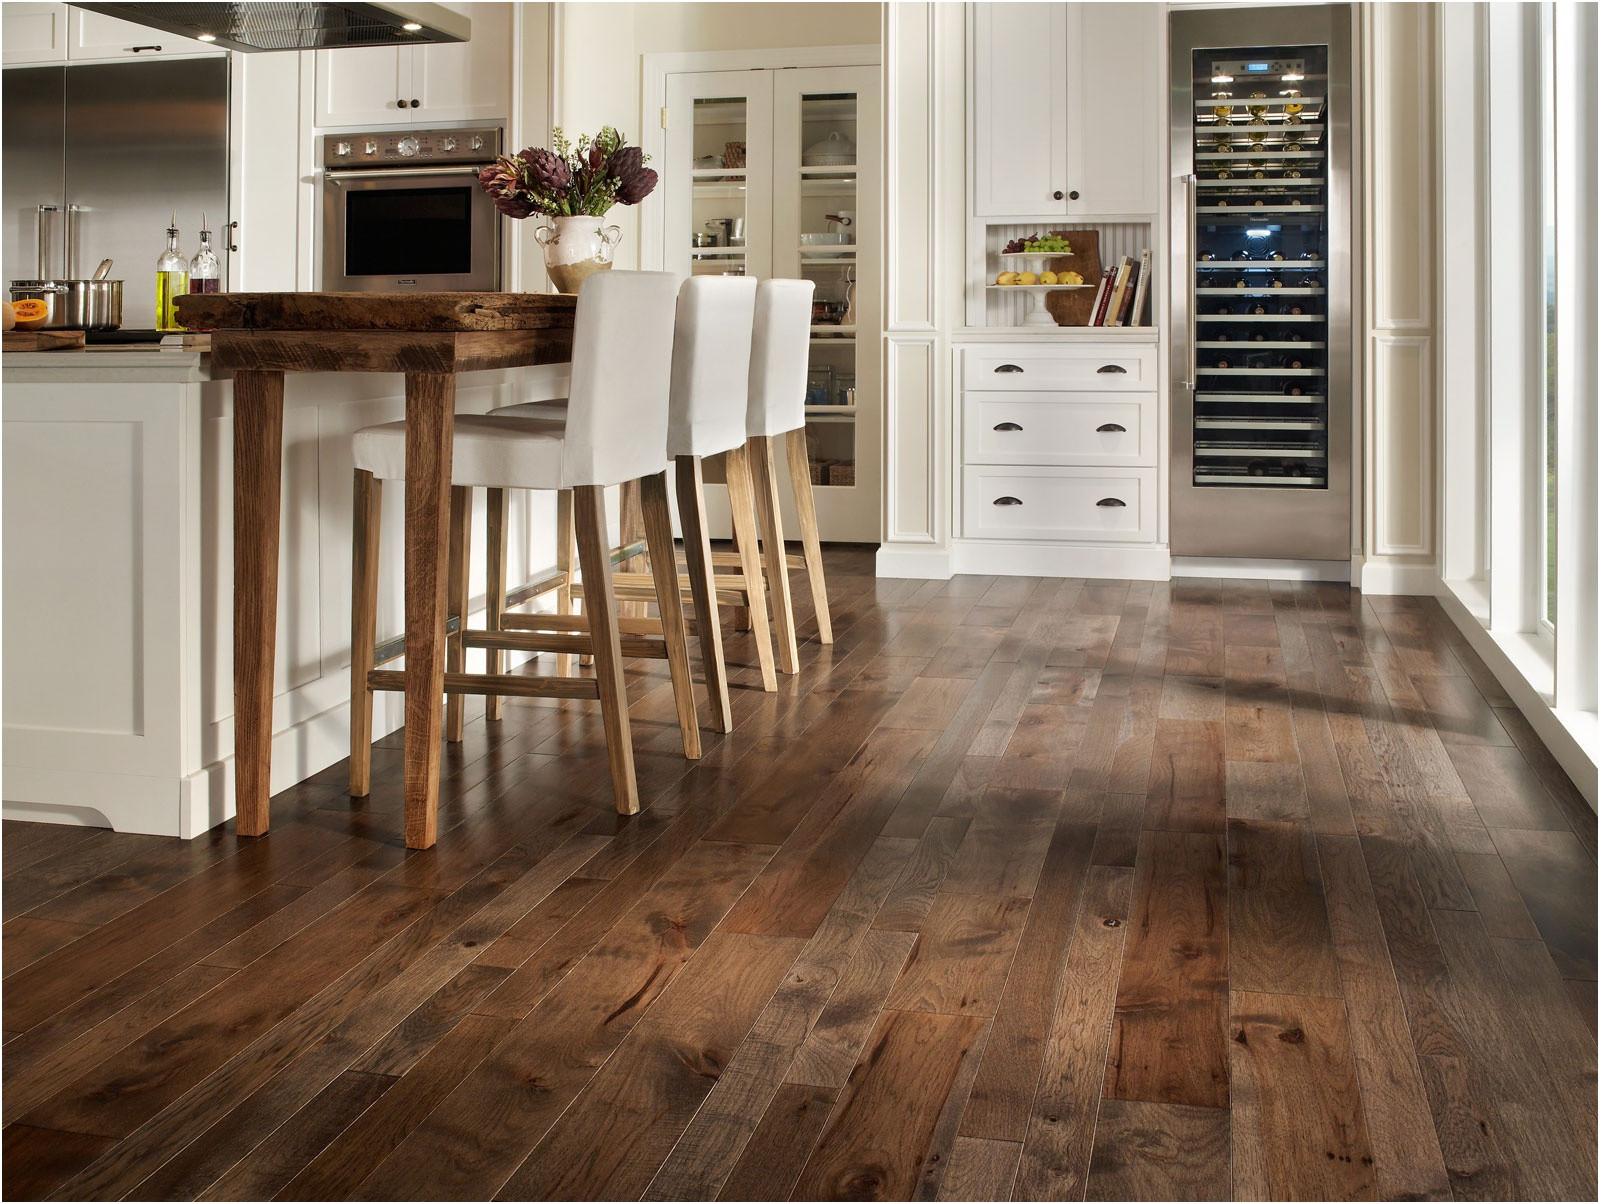 waterproof hardwood flooring home depot of waterproof laminate flooring home depot inspirational best laminate for waterproof laminate flooring home depot beautiful dark hardwood floor kitchen sensational hardwood floors in the kitchen